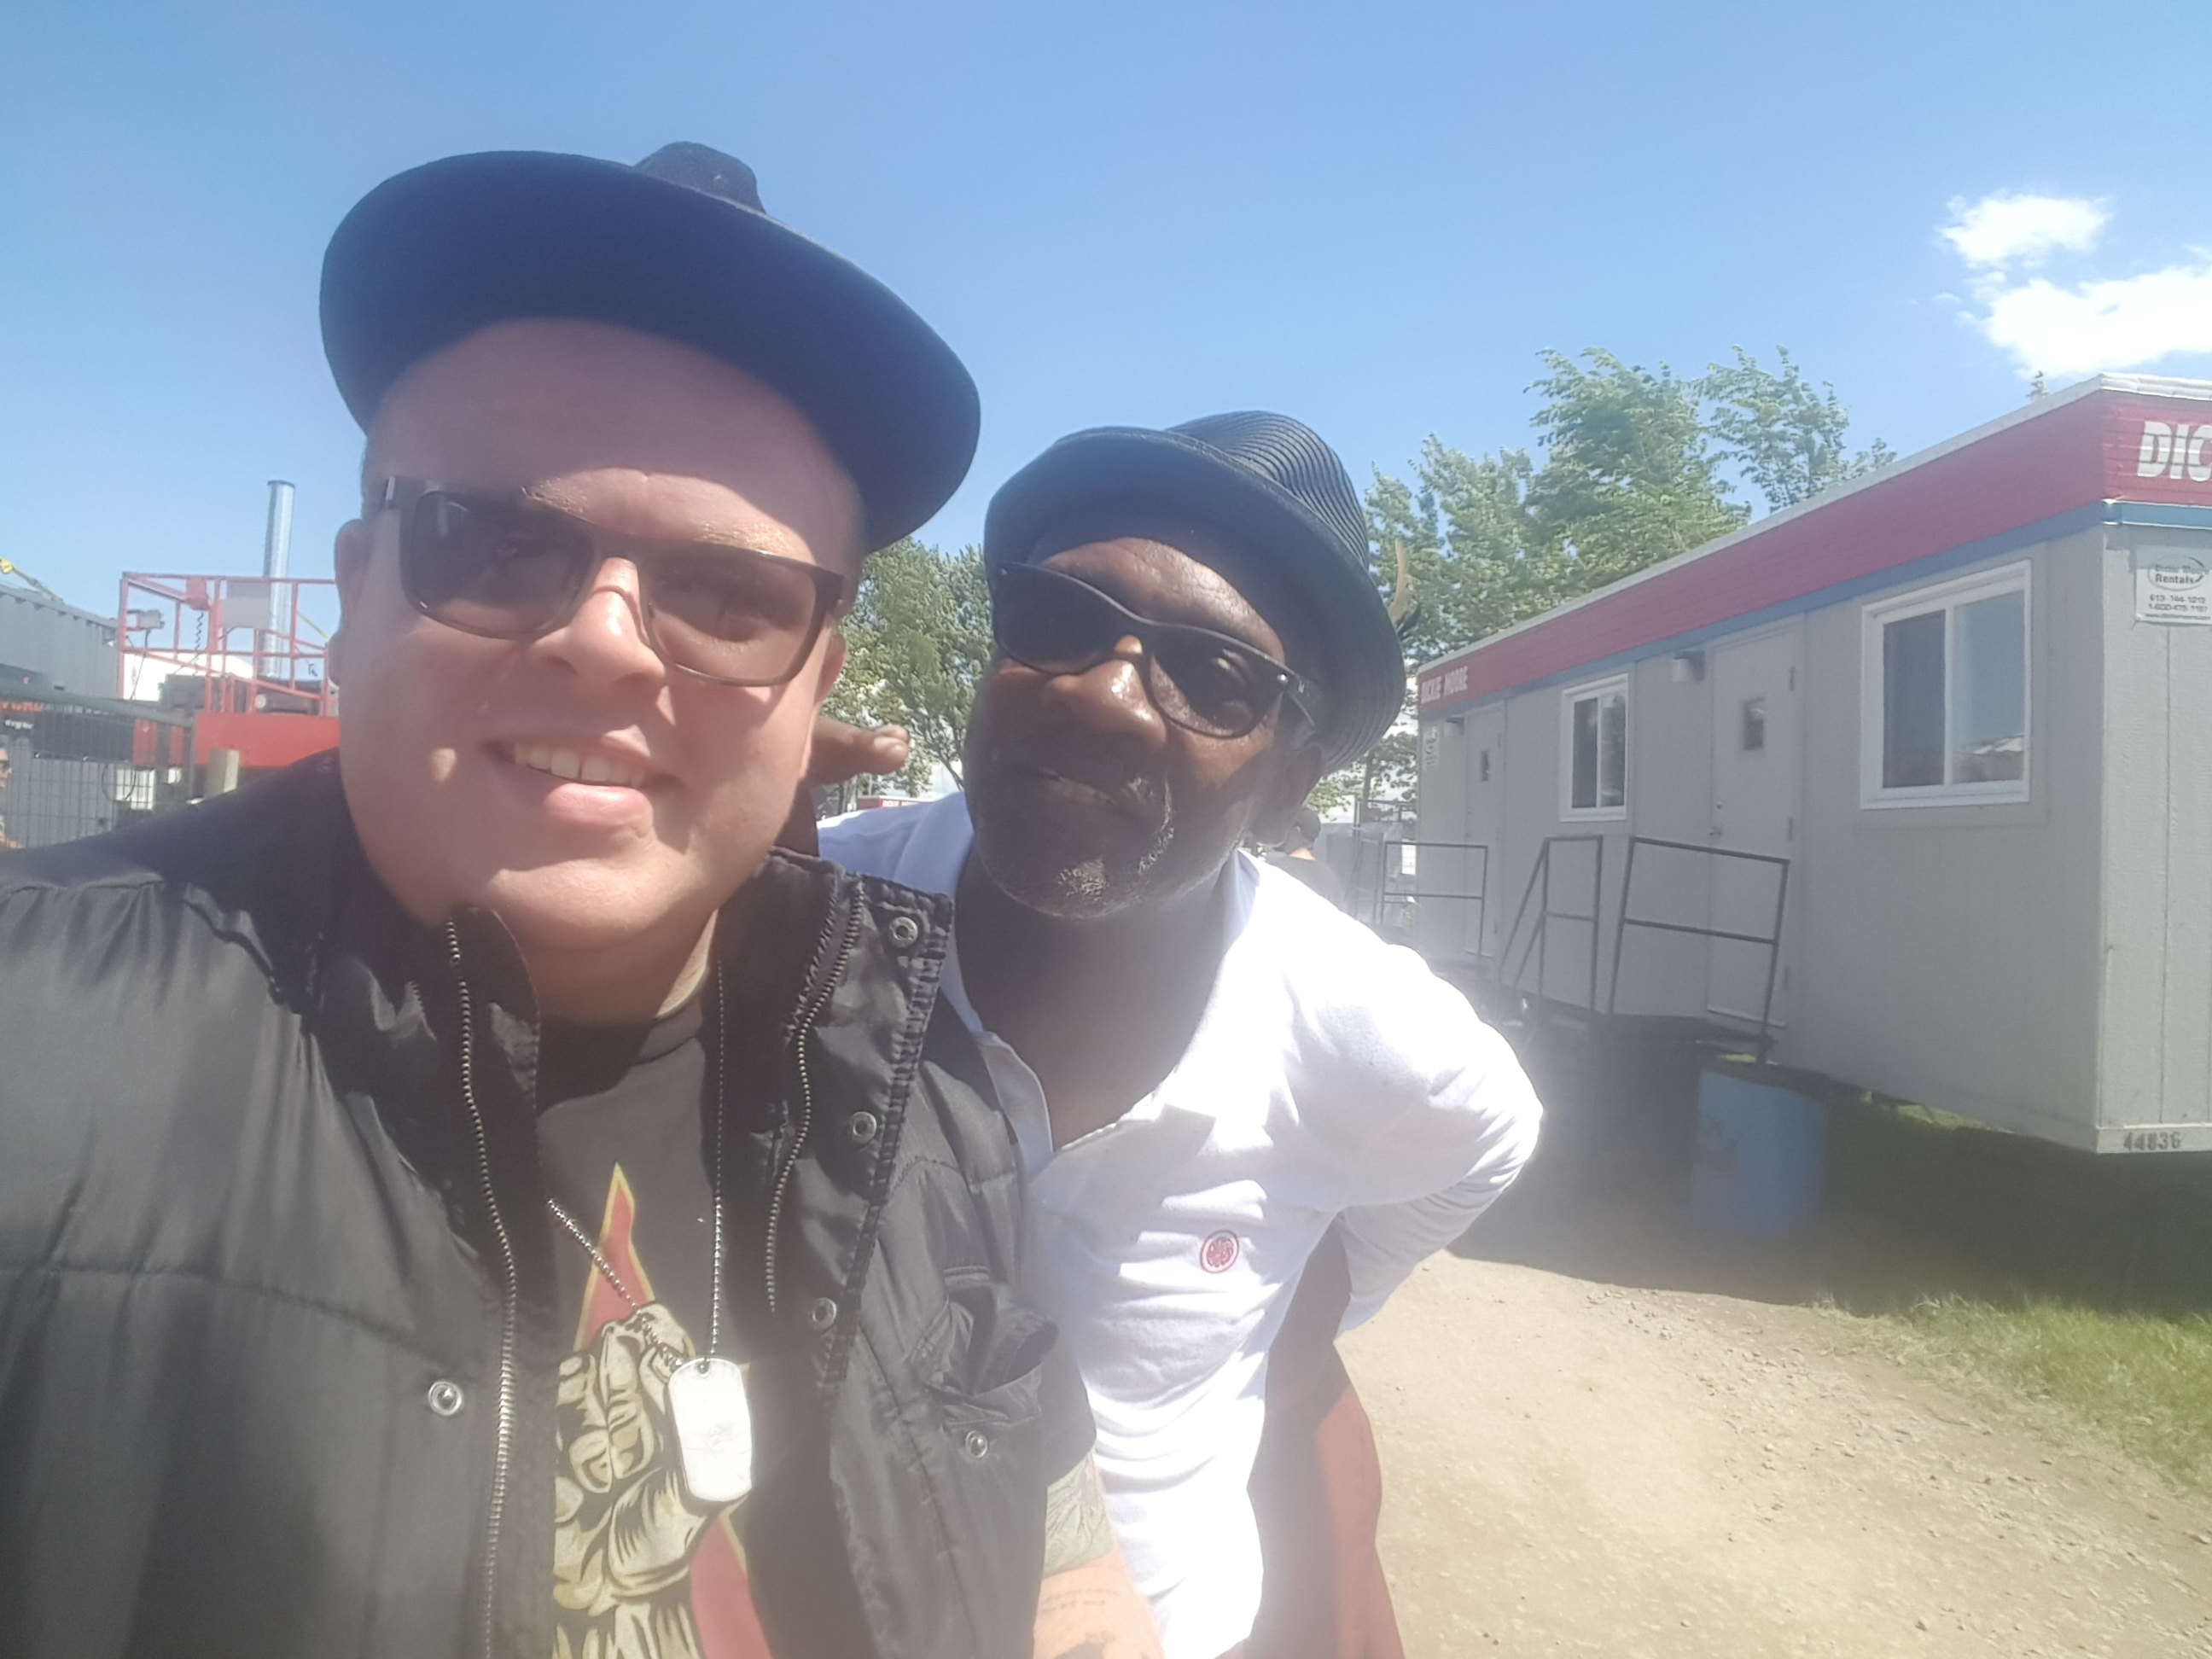 Our own Leigh Bursey posing with Lynval Golding of Lynval Golding and Contra Coup, and legendary English band, The Specials.